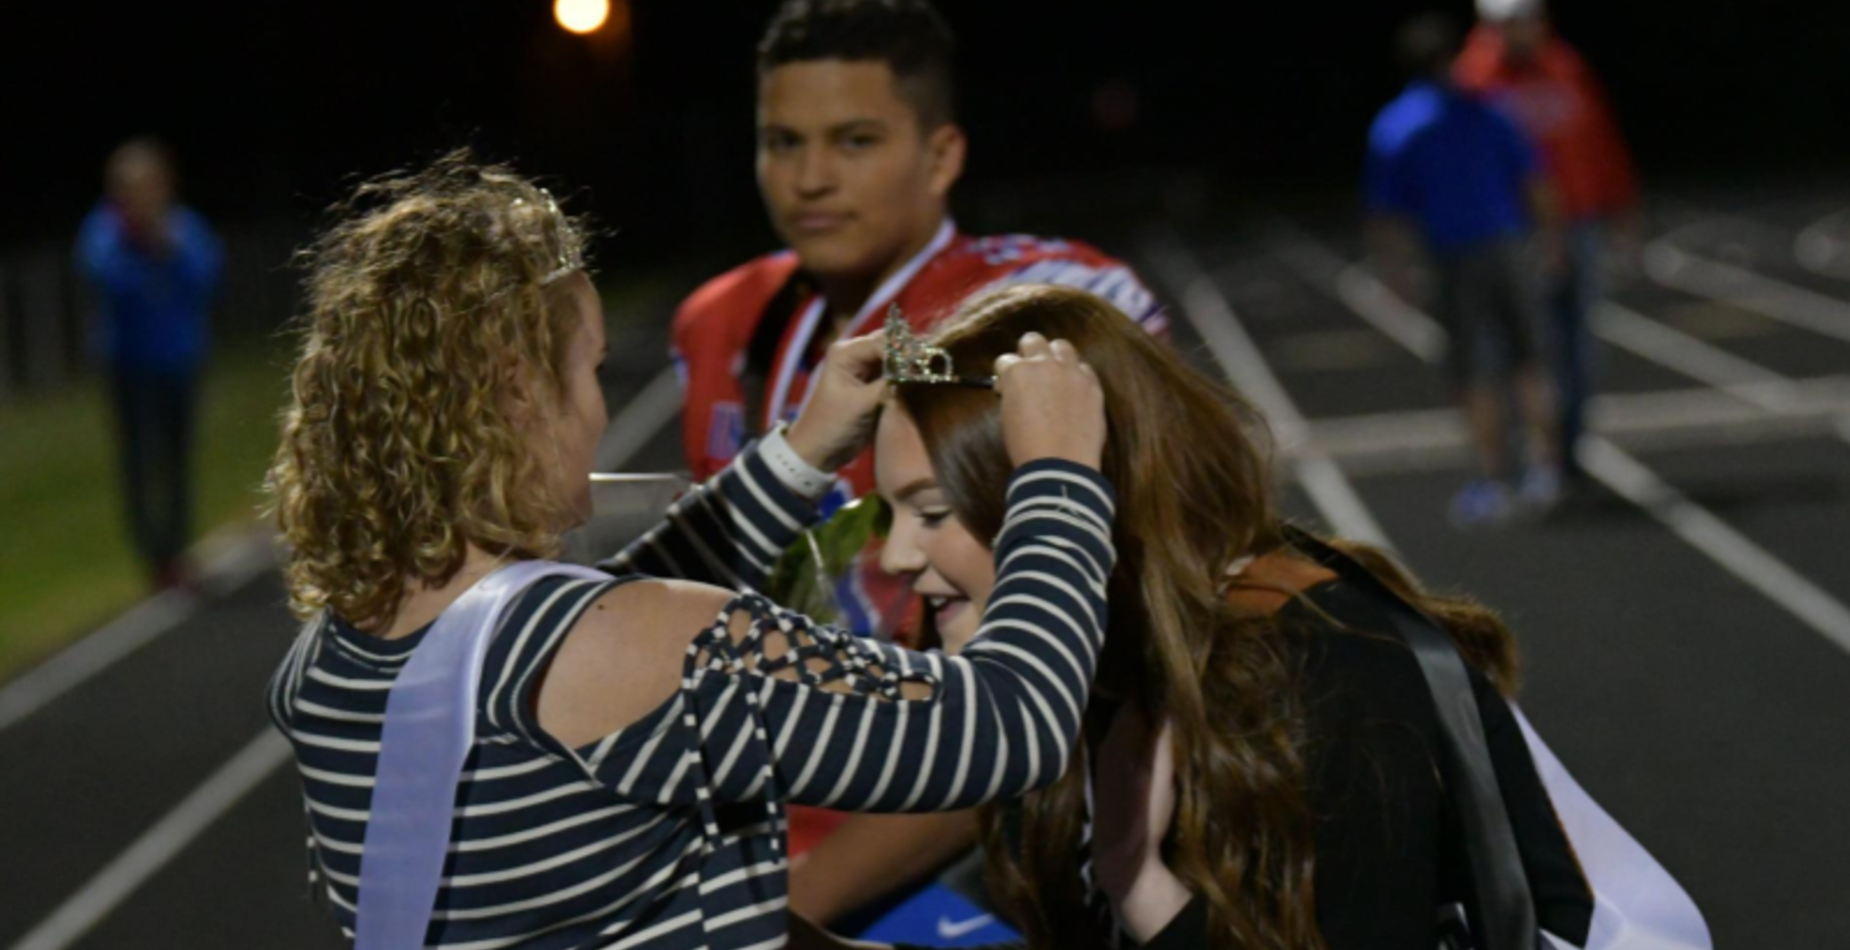 Crowning Homecoming Queen